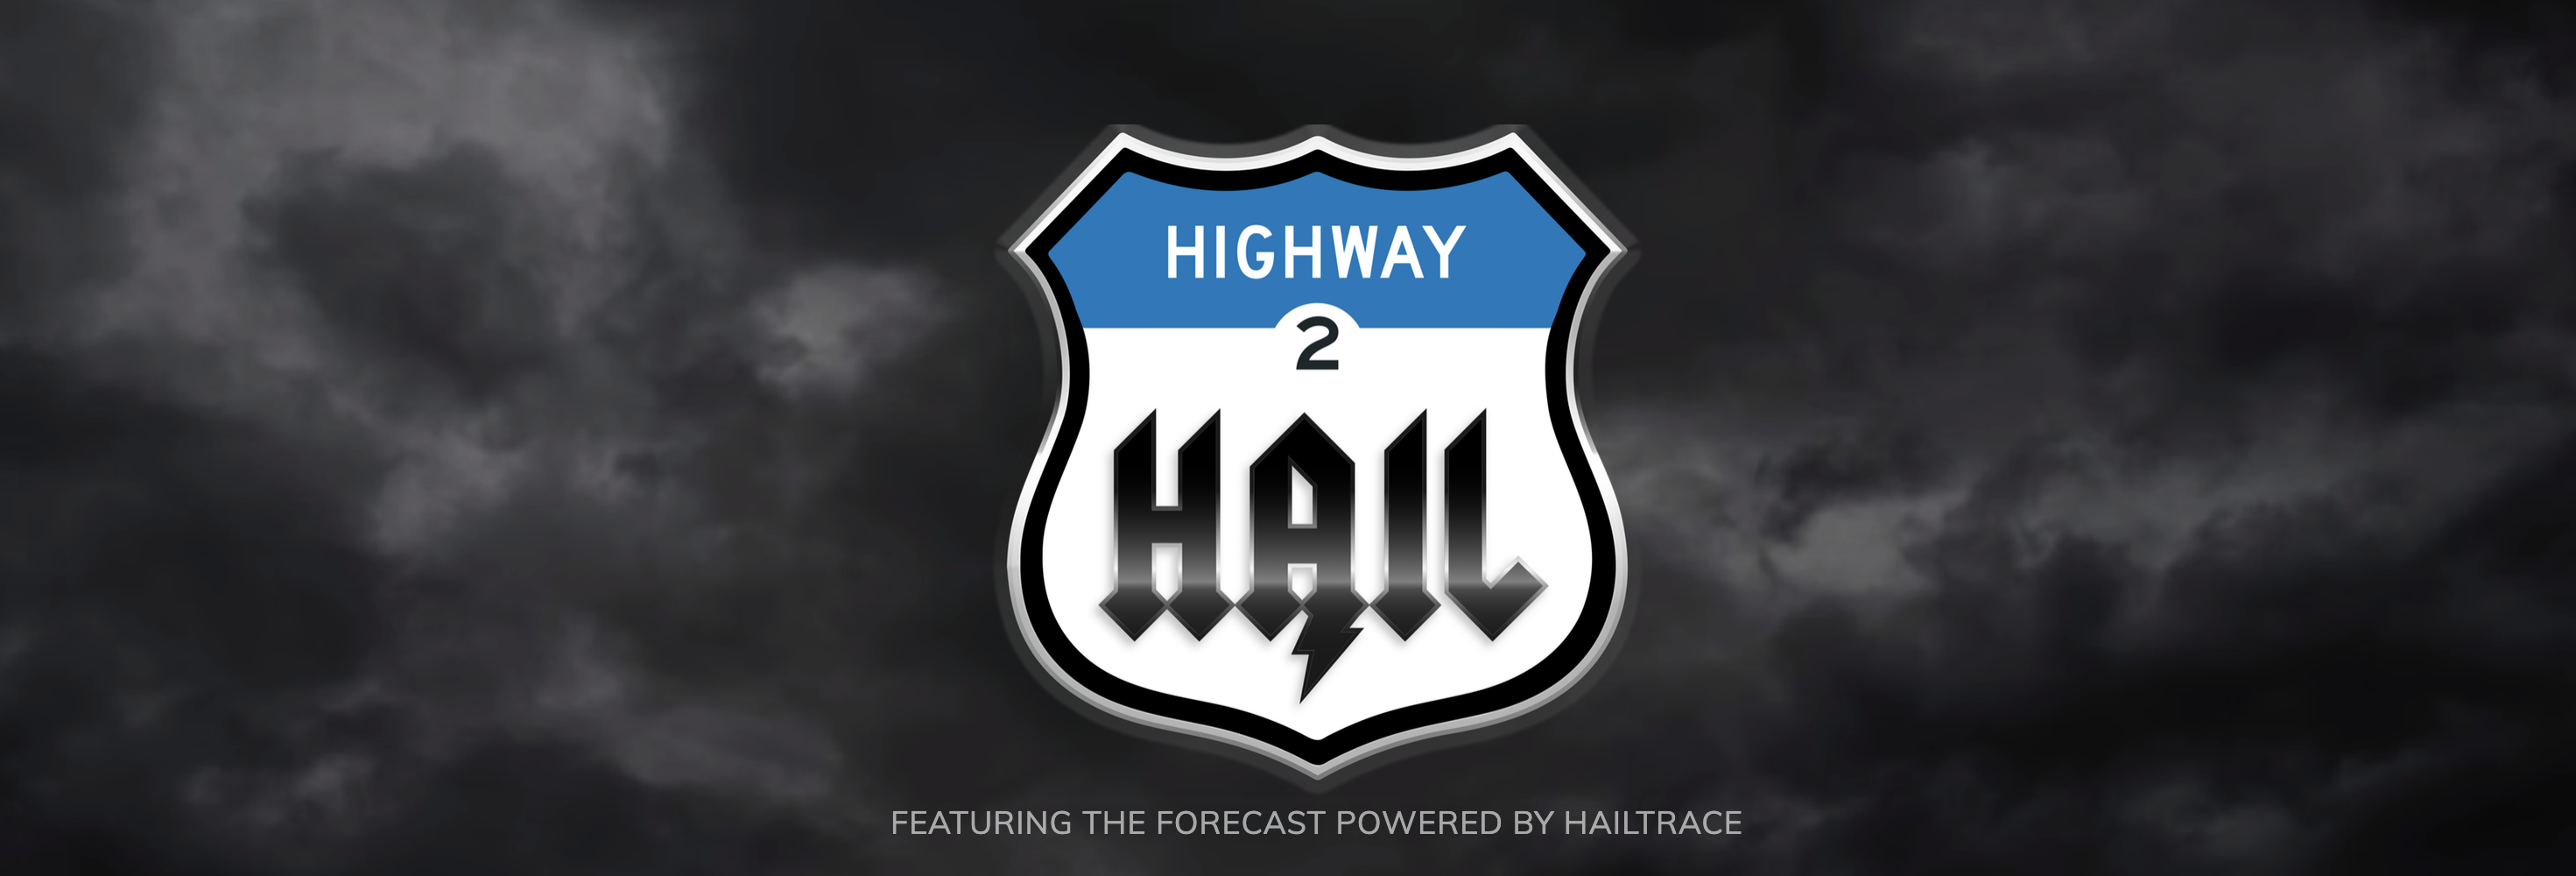 Highway To Hail - PA